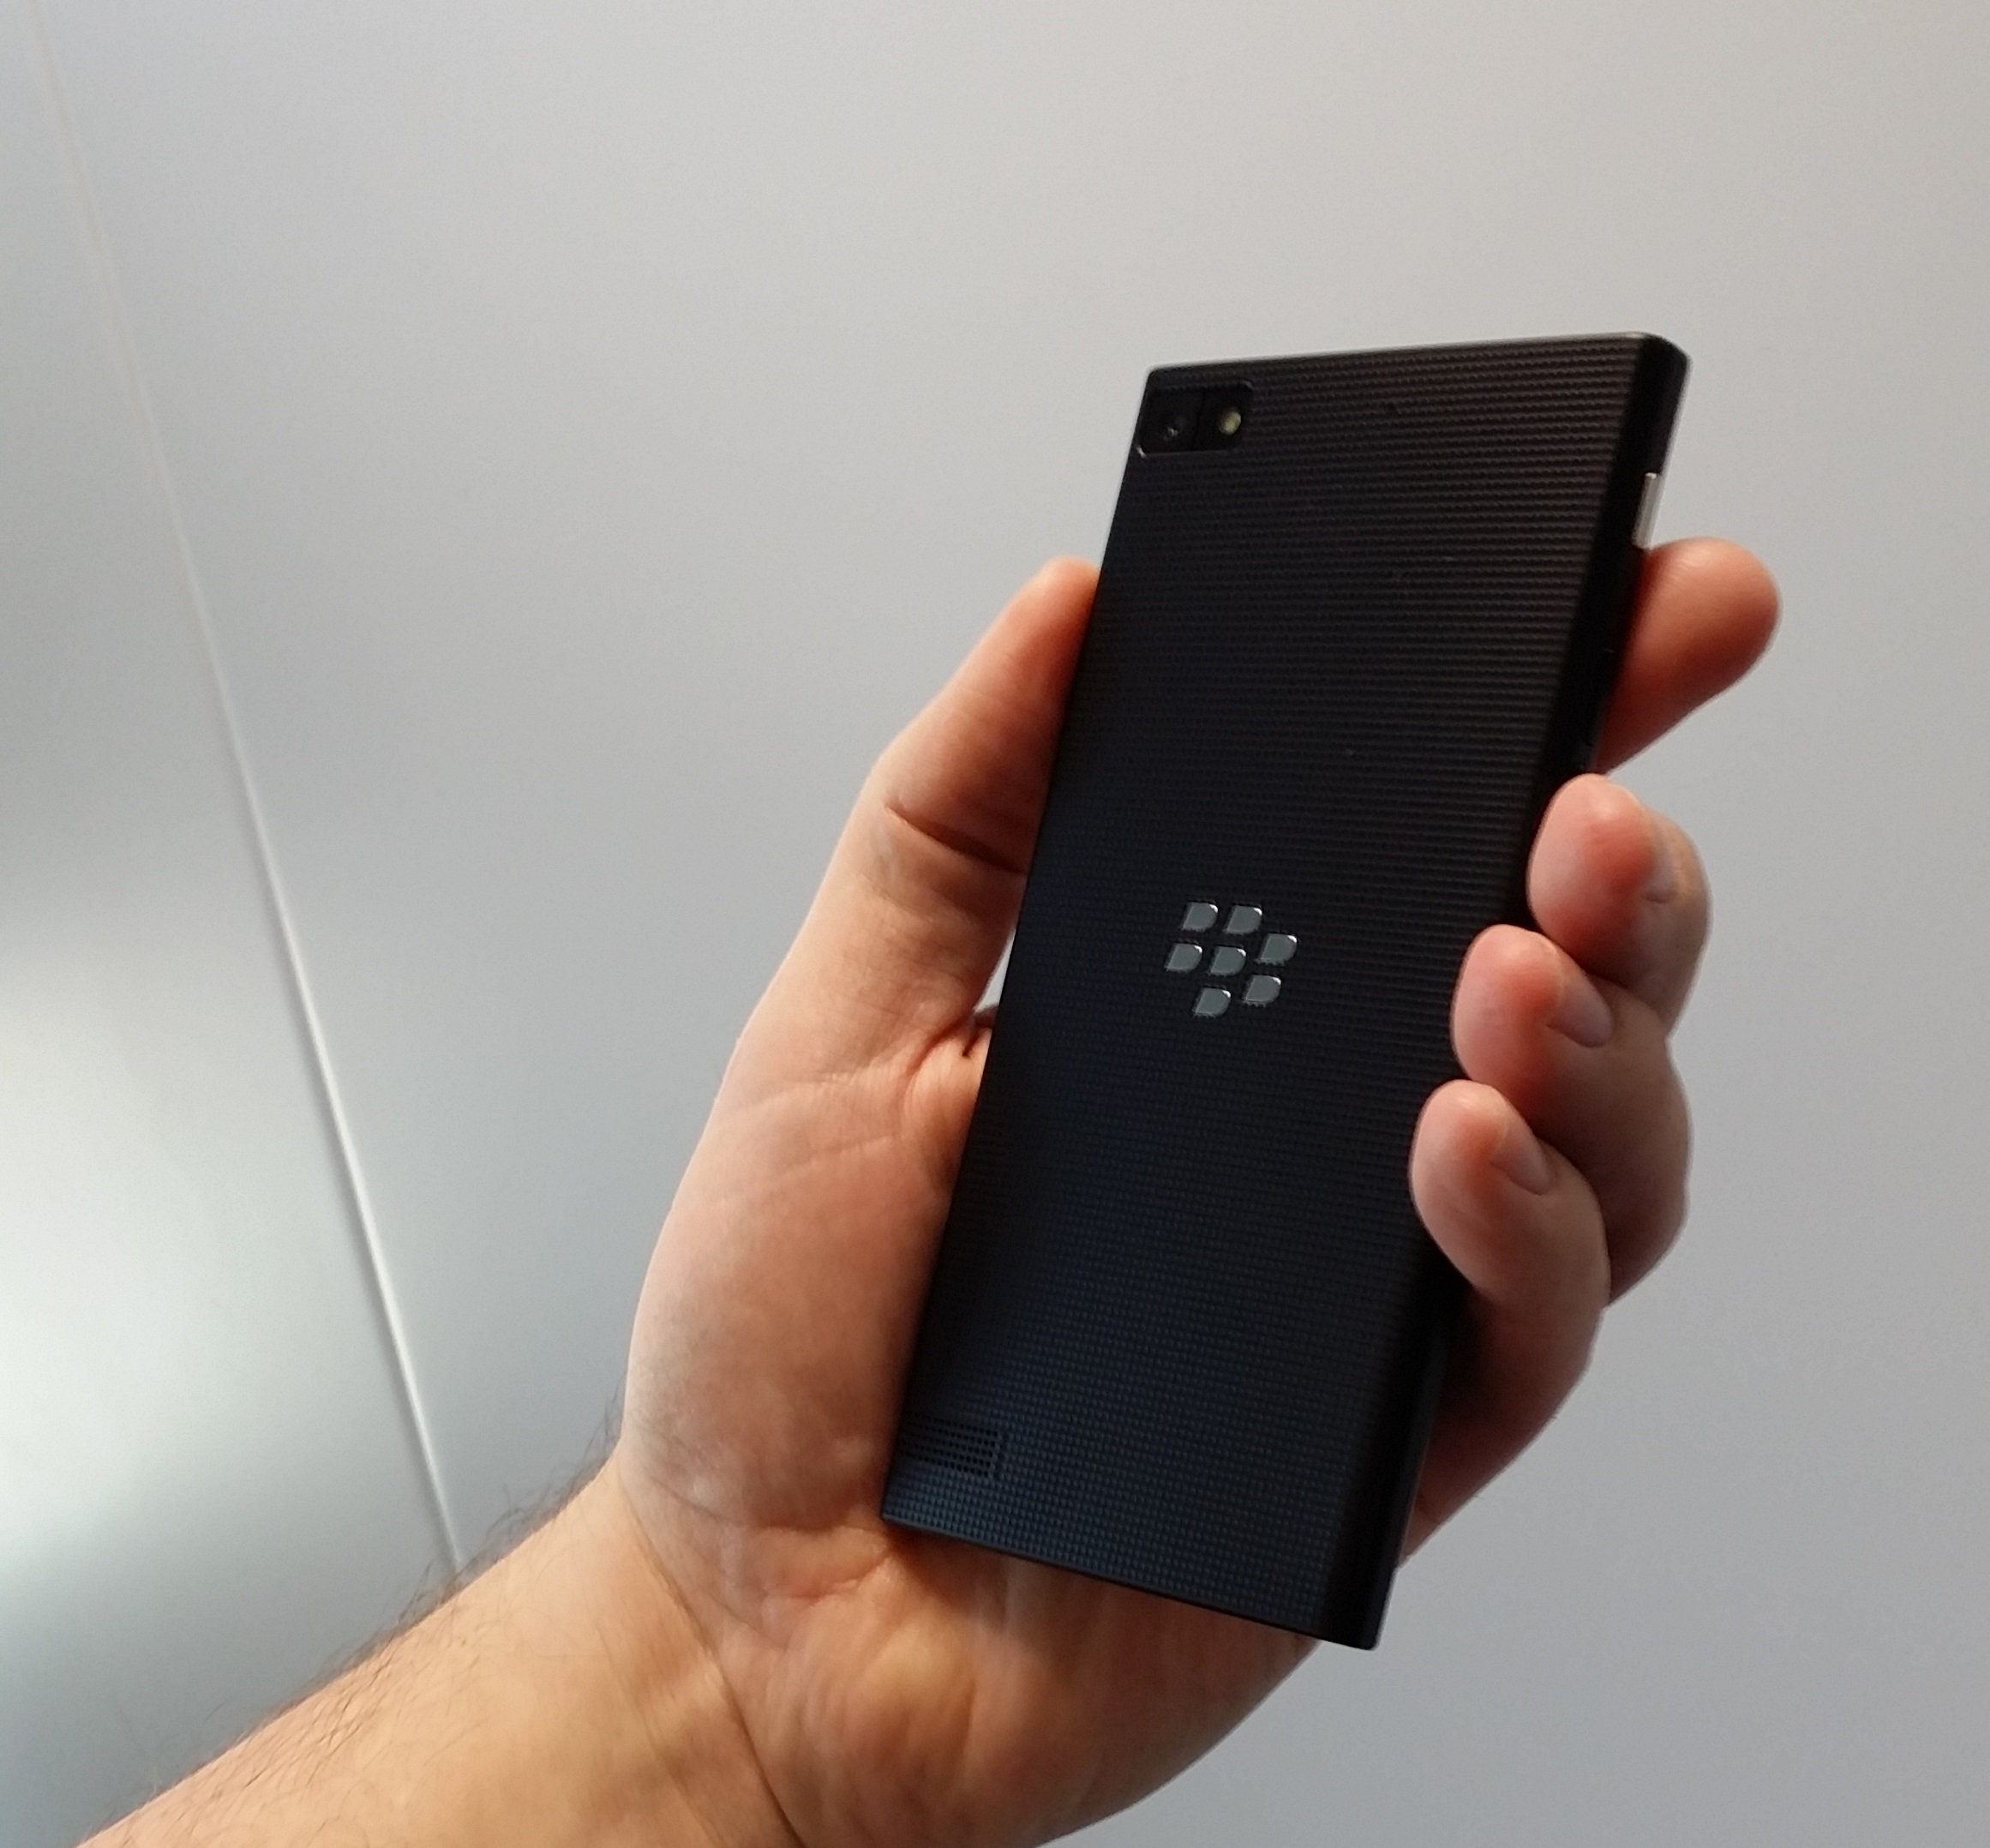 Blackberry Announces Smart phone With 5-Inch Screen and First Update